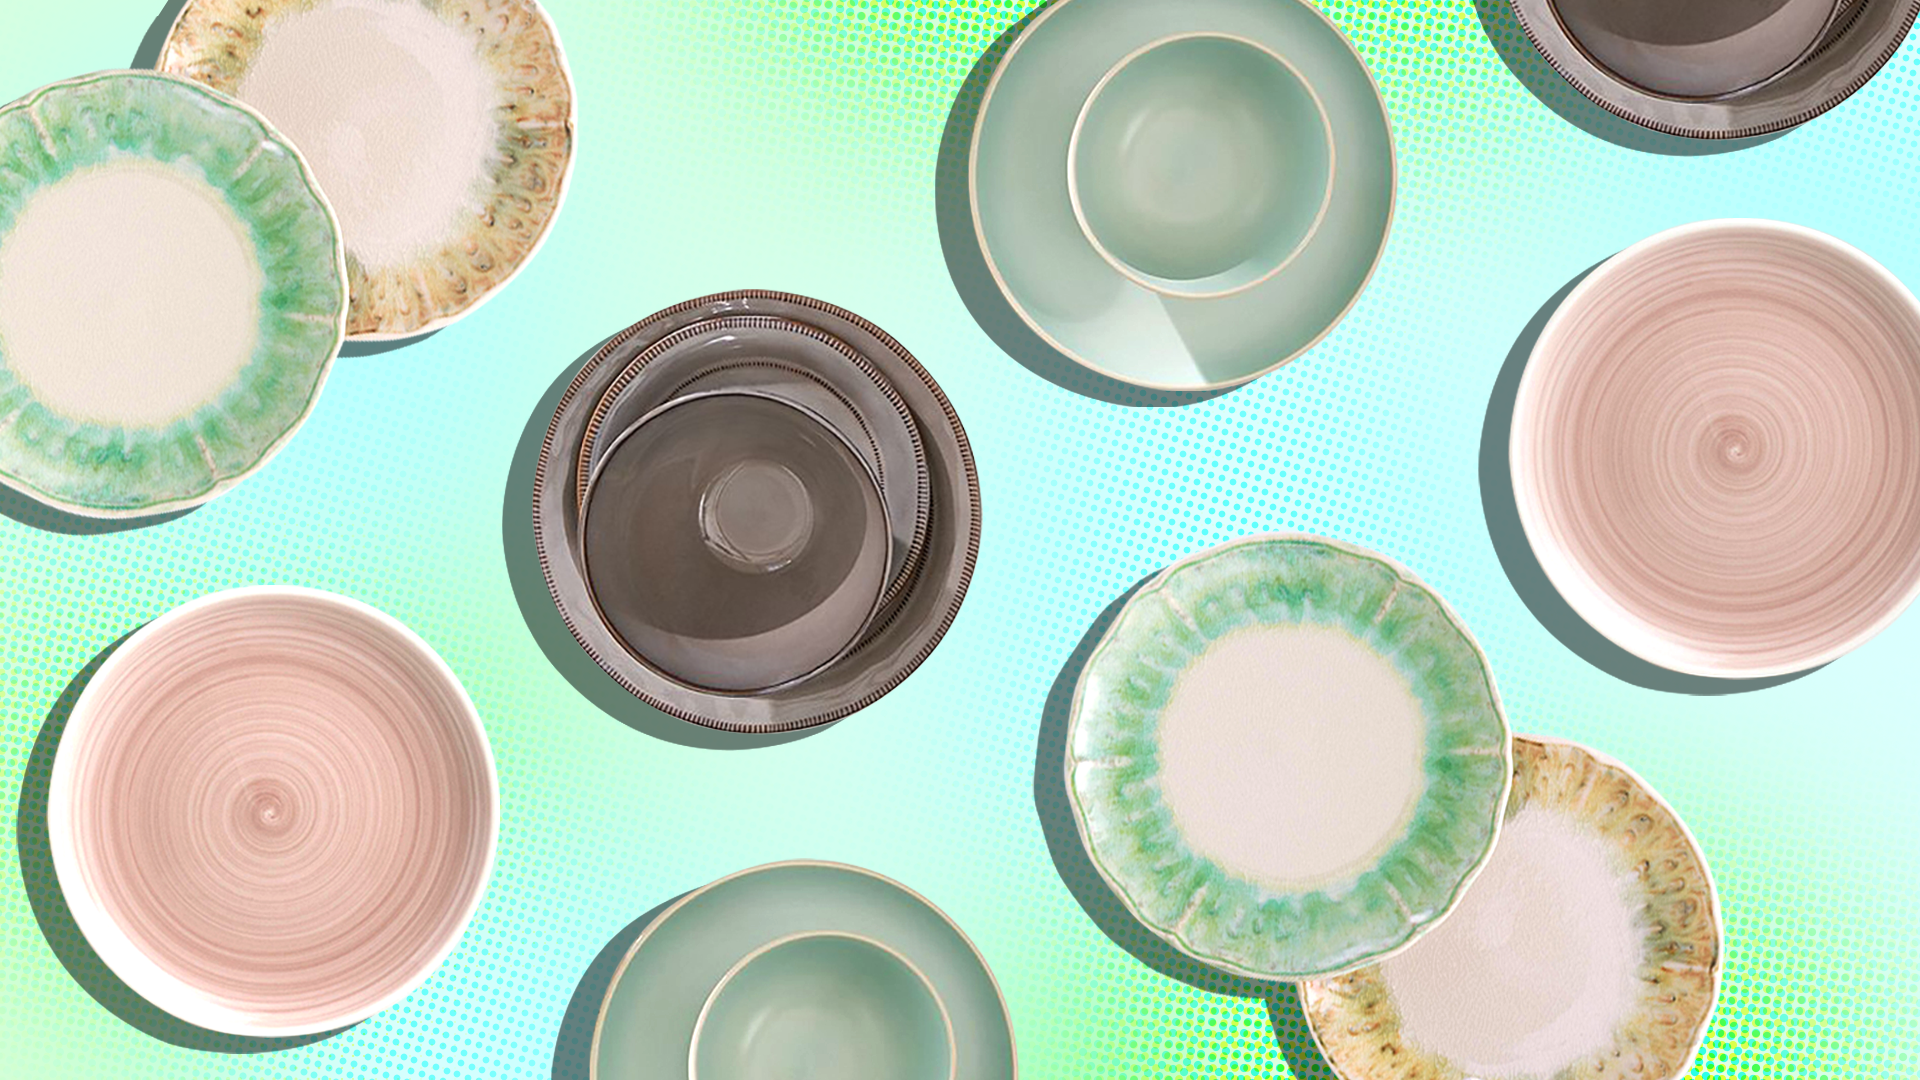 16 Ceramic Dinnerware Sets That Look Way More Expensive than They Are